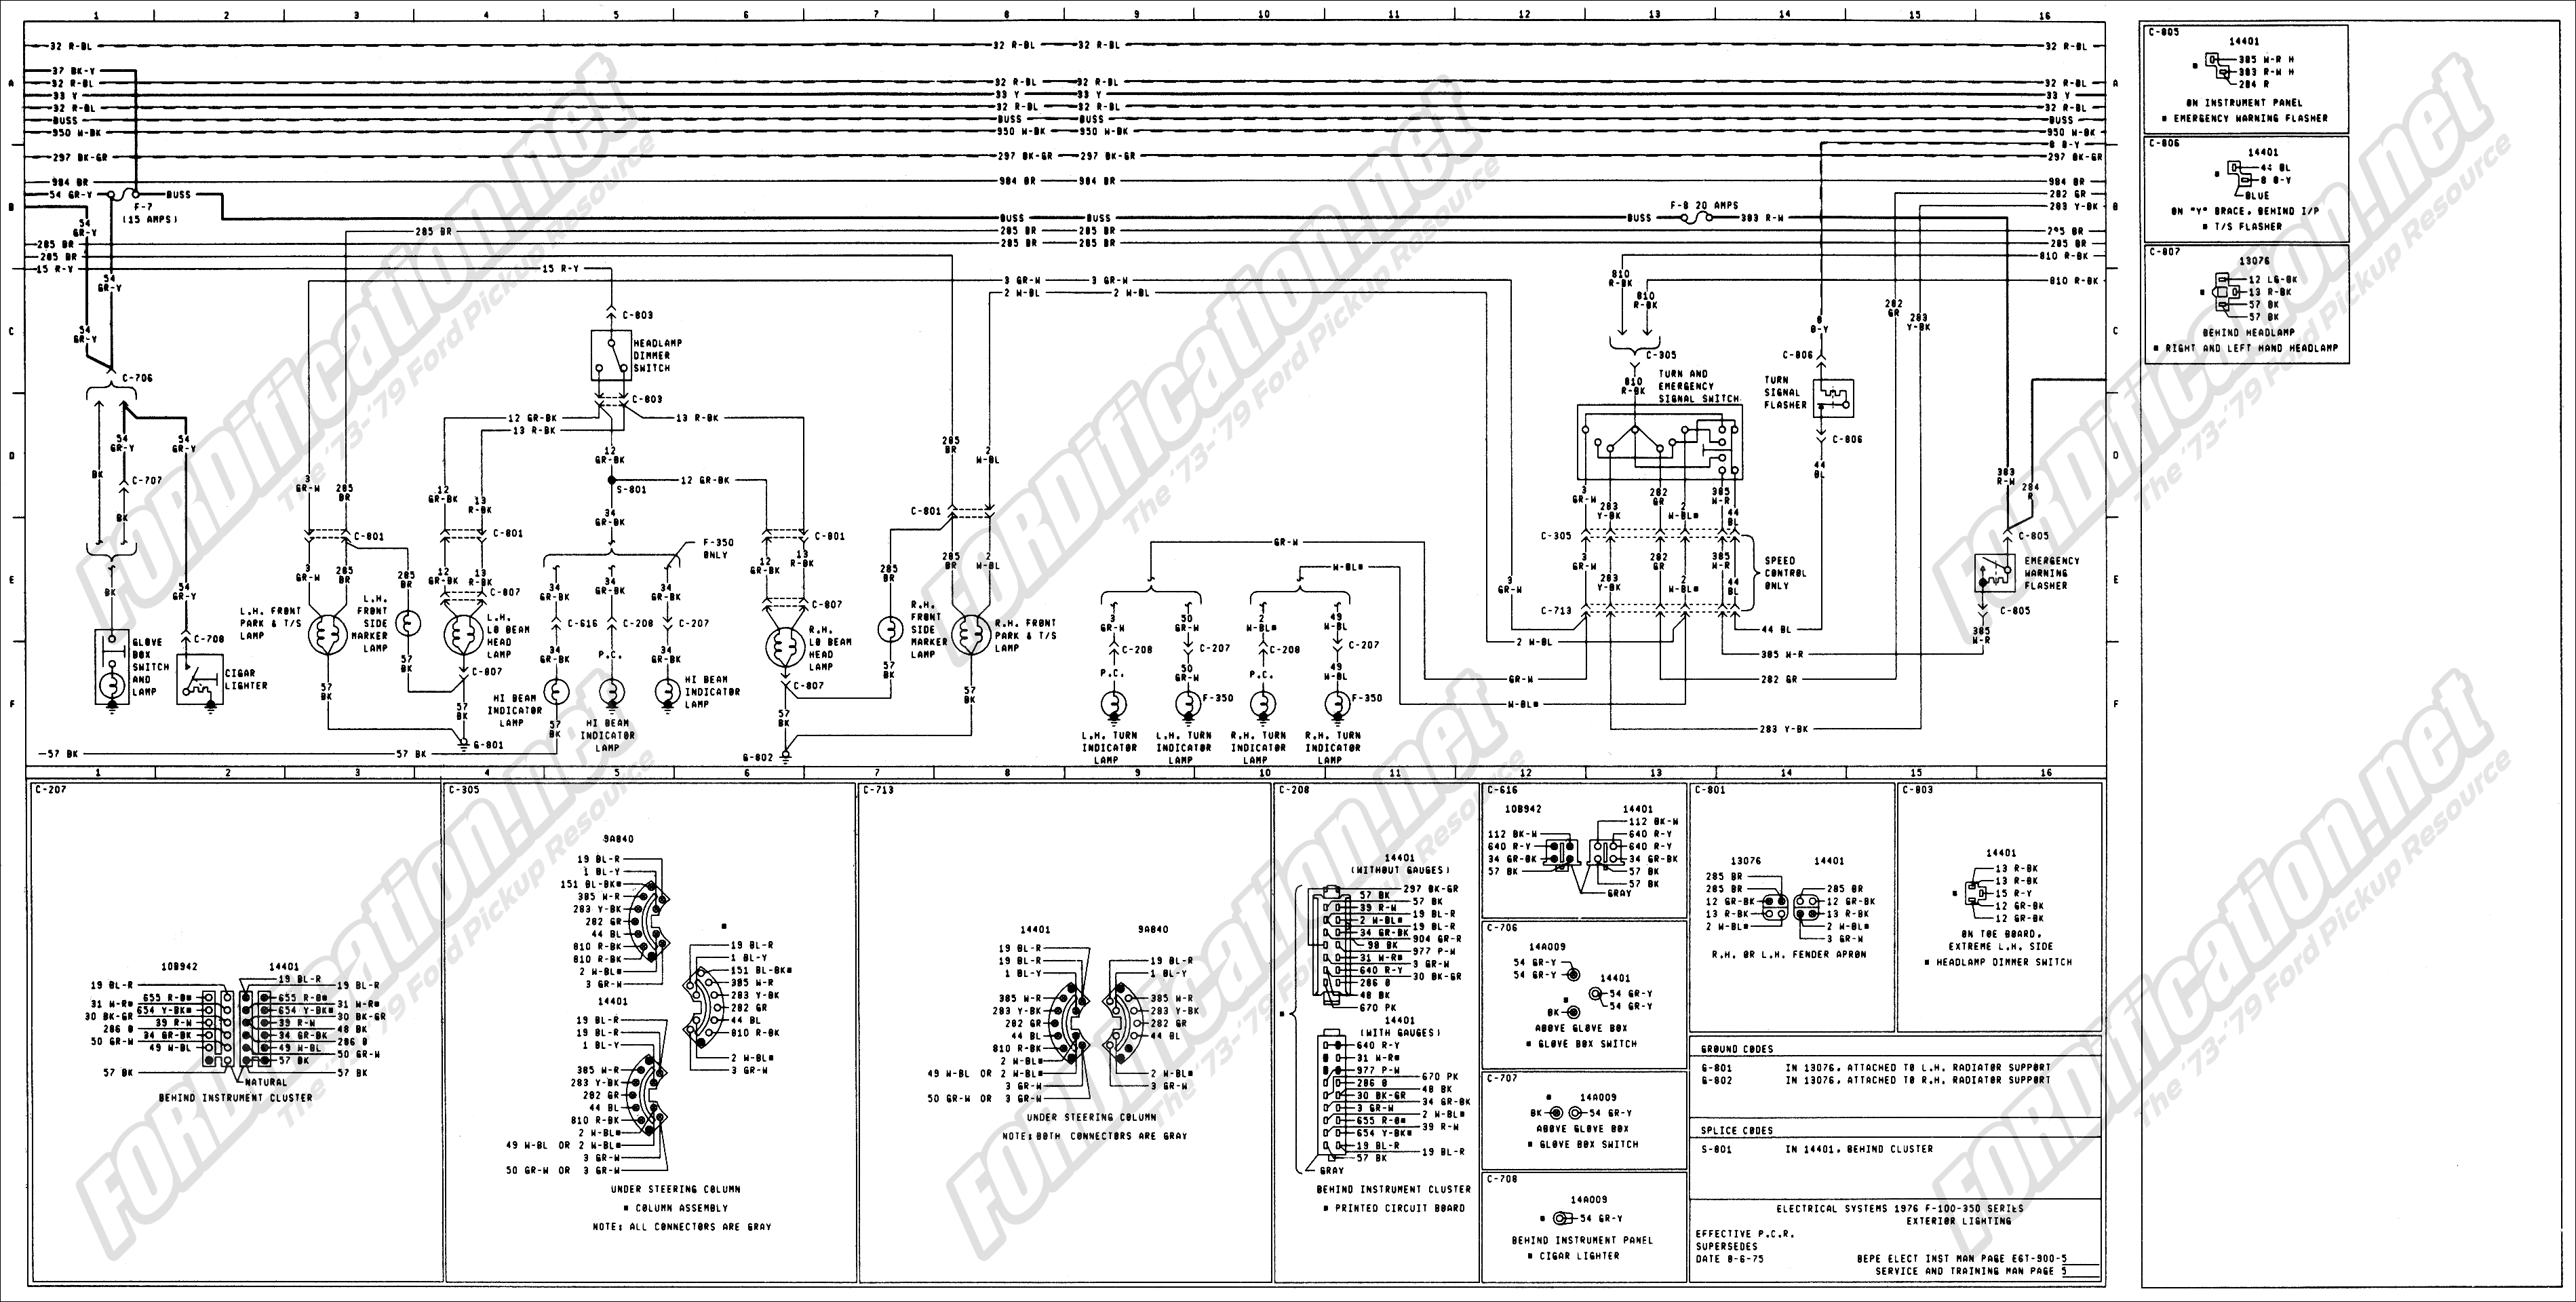 wiring_76master_5of9 1973 1979 ford truck wiring diagrams & schematics fordification net 1992 ford f250 starter wiring diagram at nearapp.co